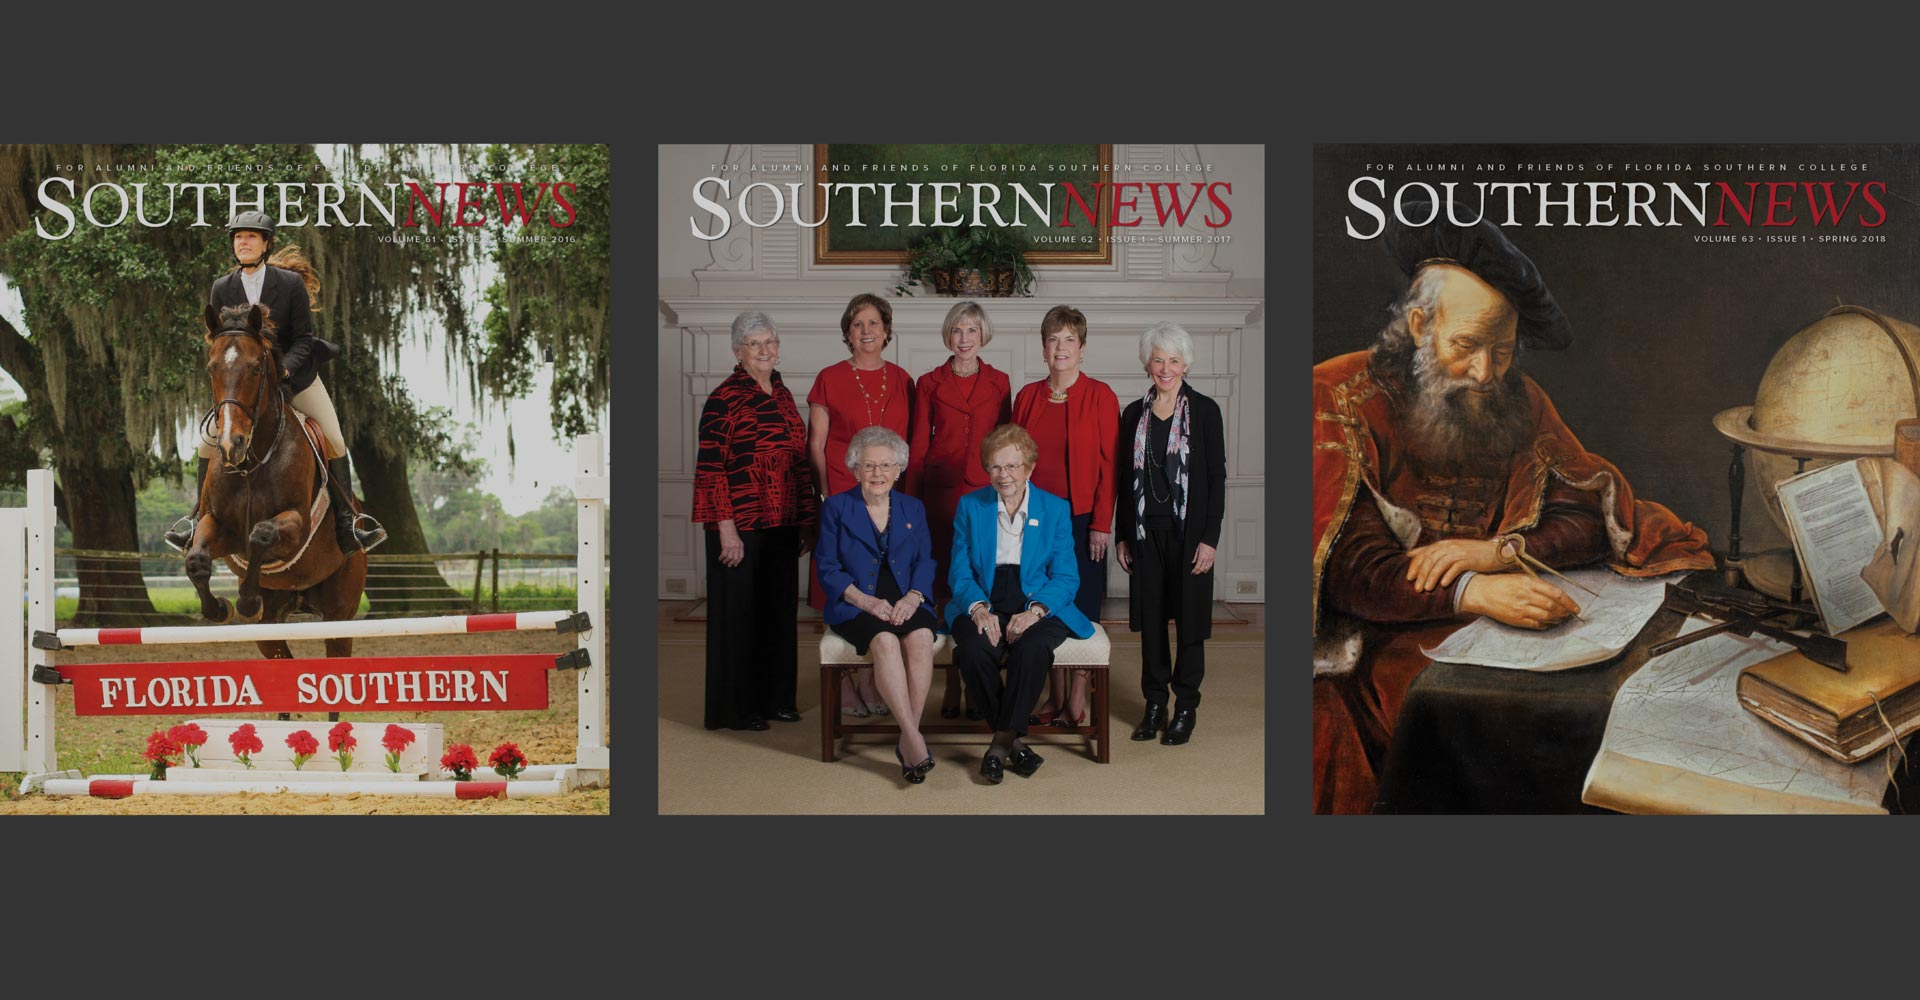 Southern News magazine covers